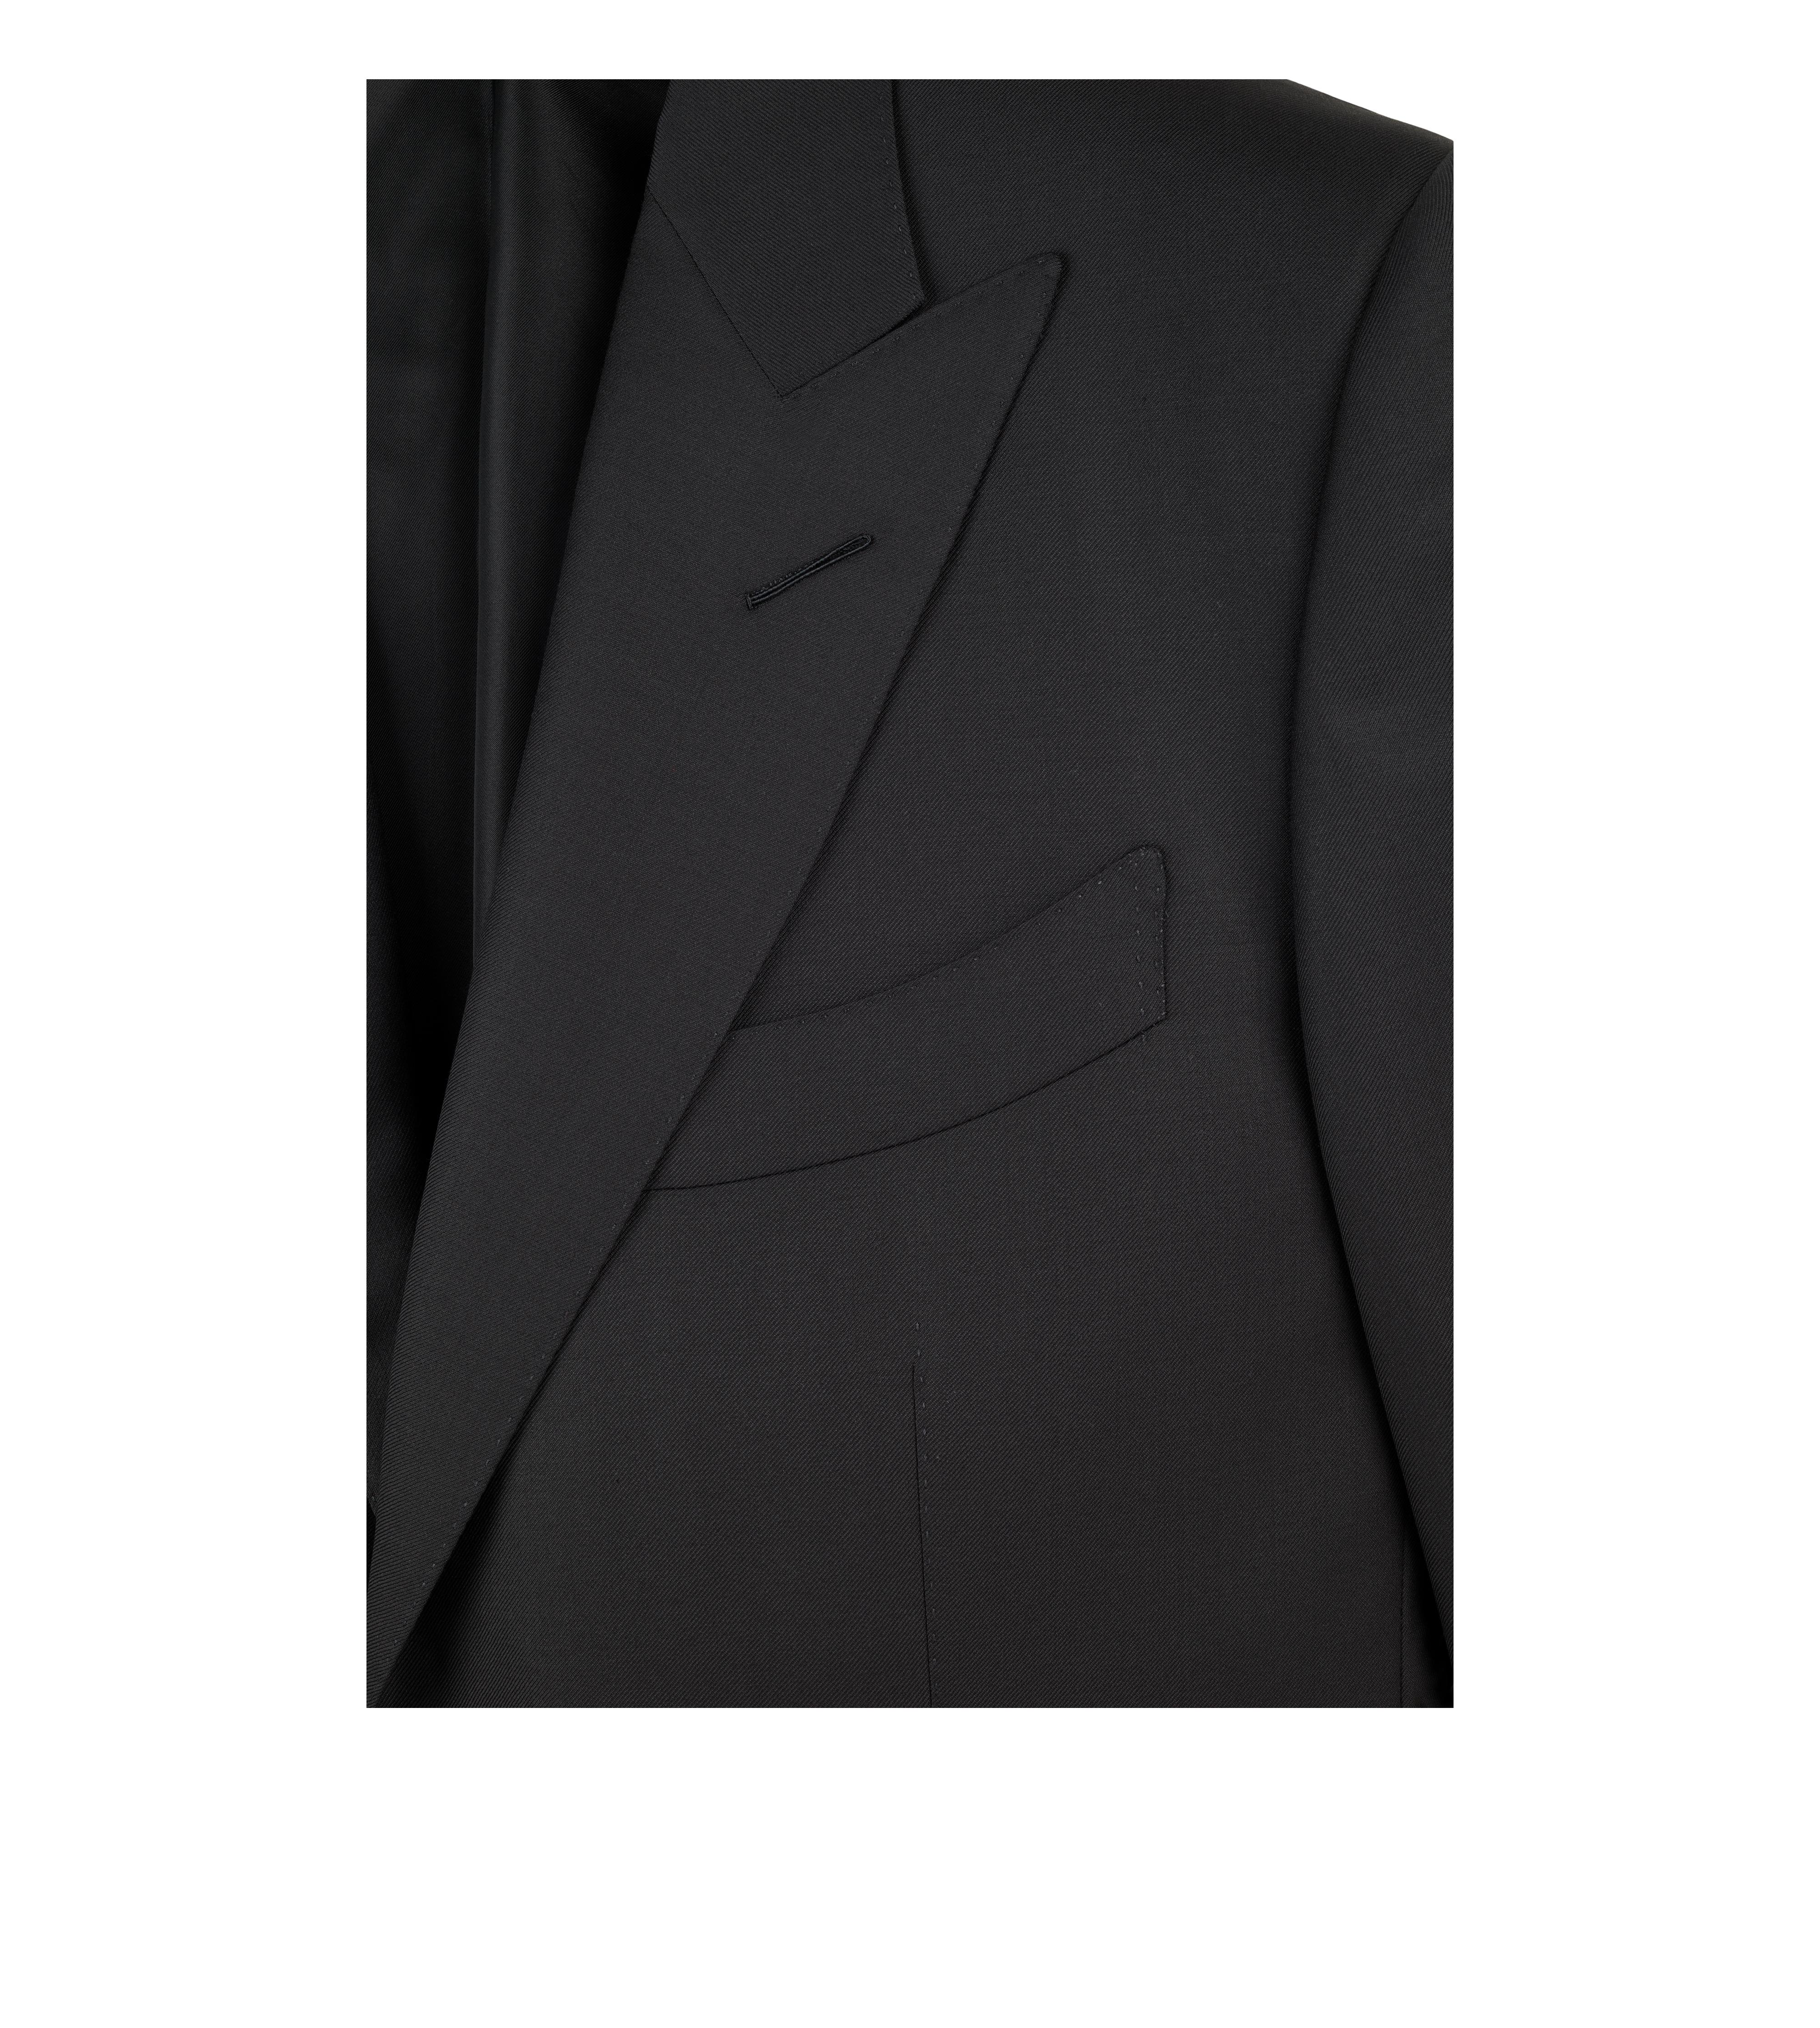 MASTER TWILL O'CONNOR SUIT D thumbnail